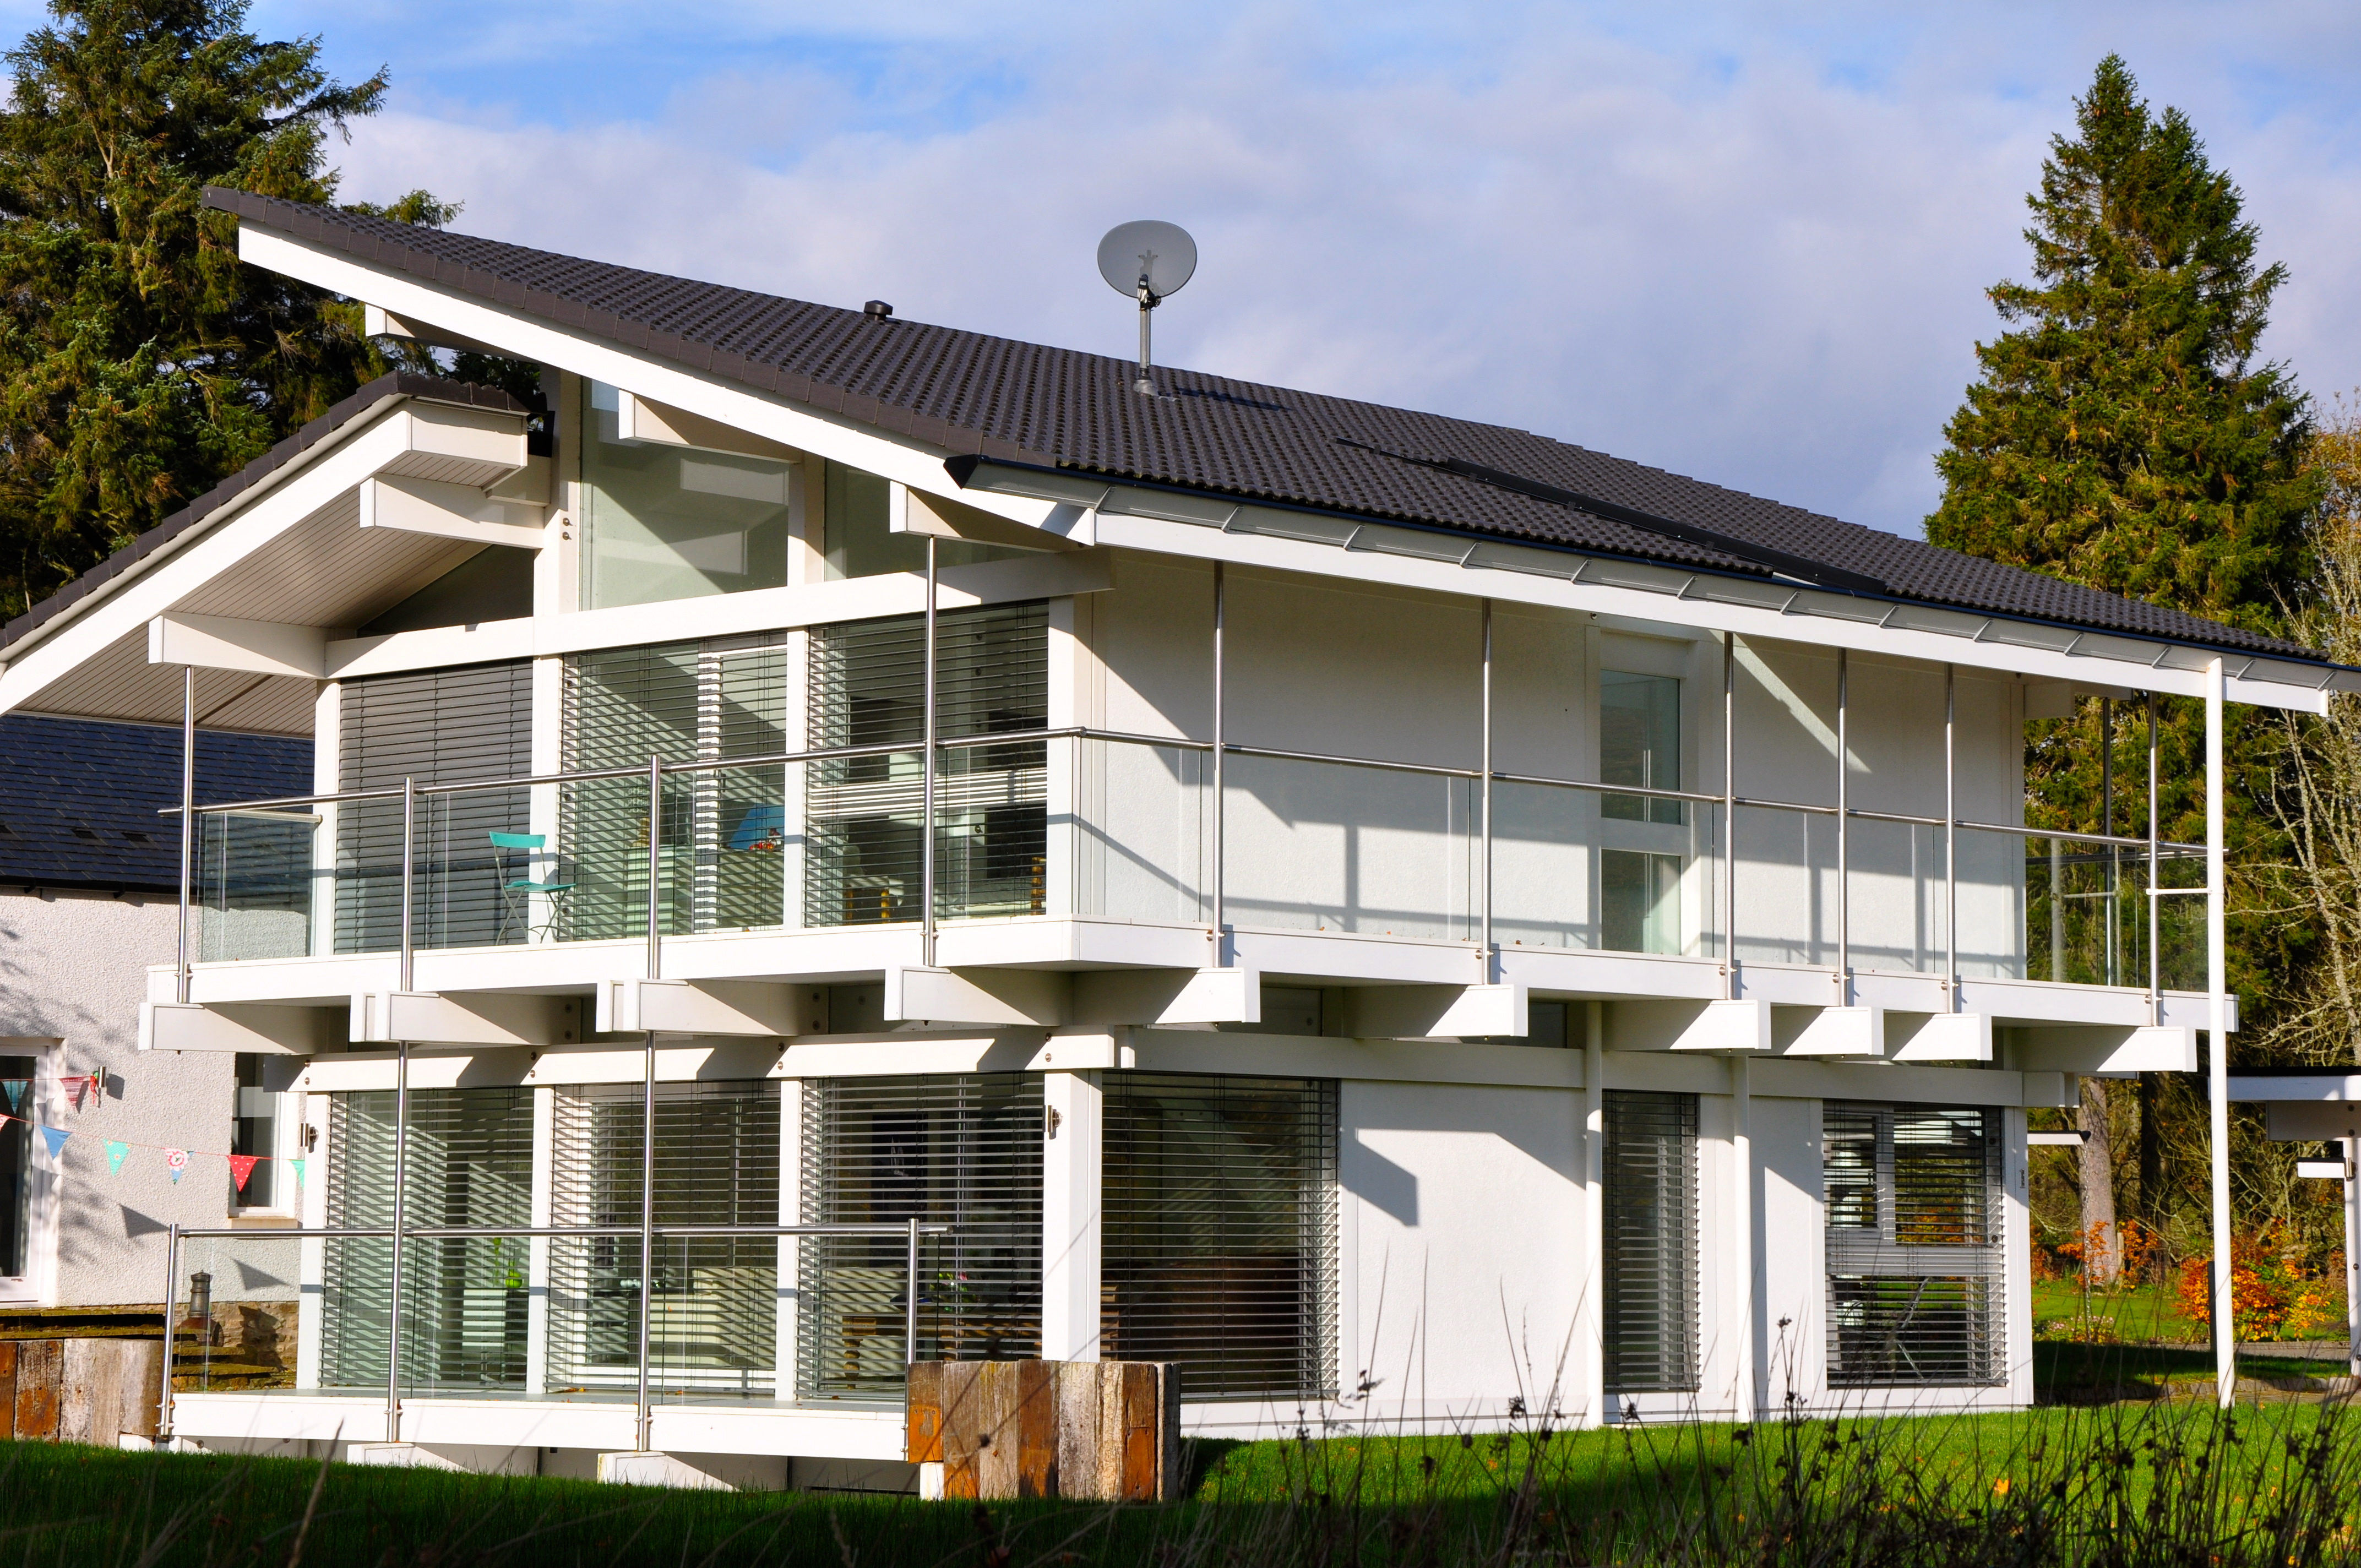 File:Huf Haus in Scotland.jpg - Wikimedia Commons